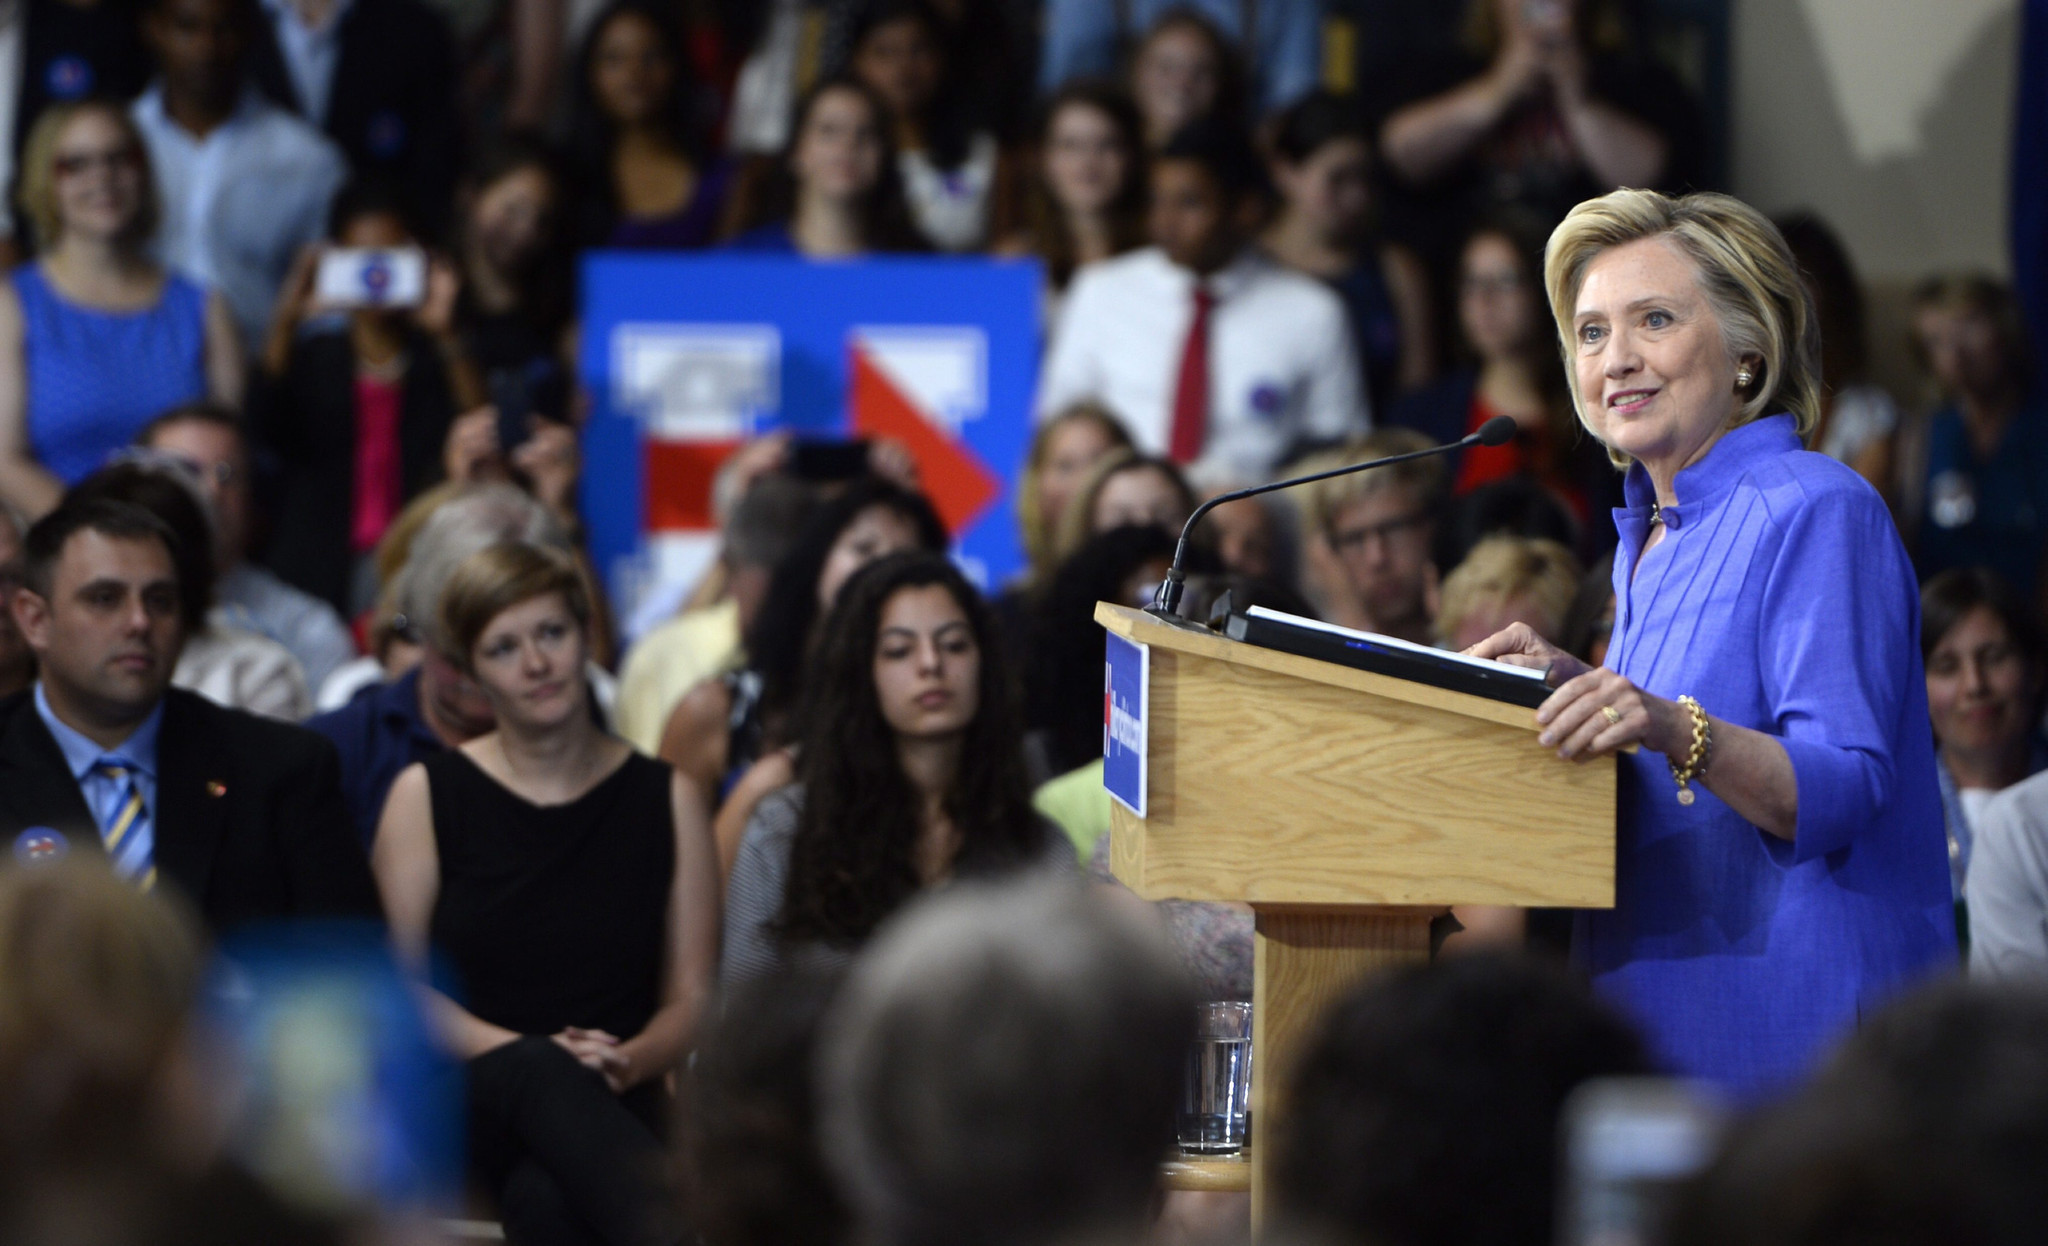 Hillary Clinton unveils $350-billion plan to make college more affordable